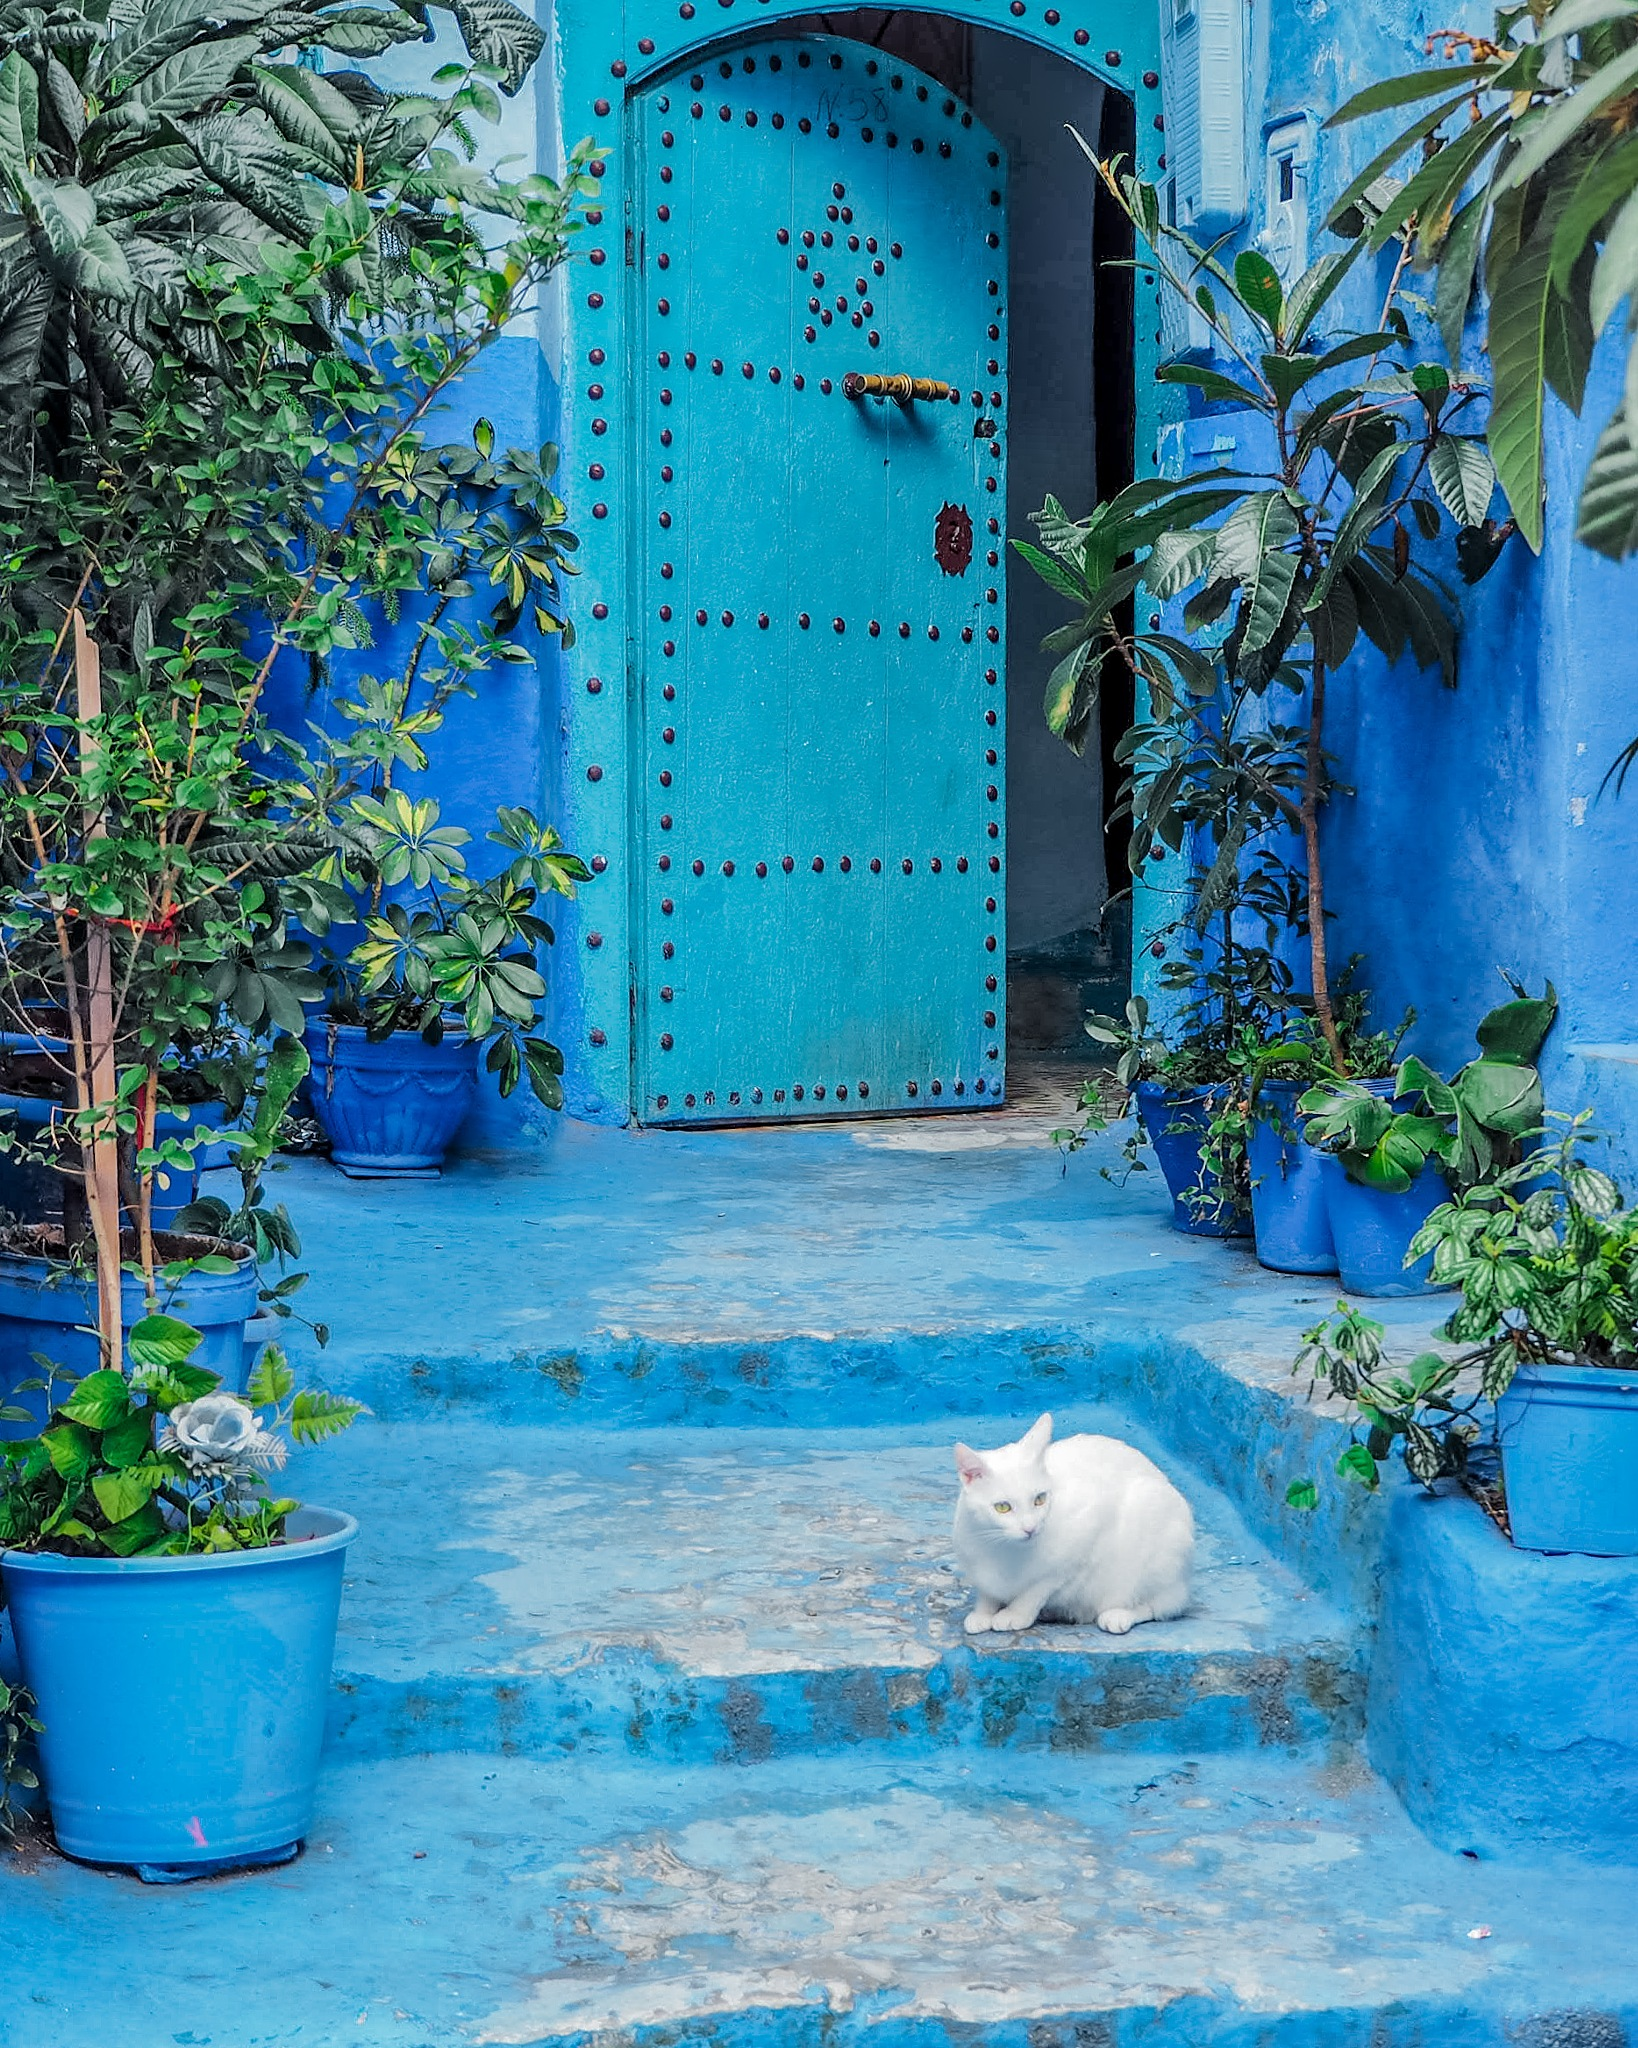 Chefchaouen, Morocco by Laura Martín